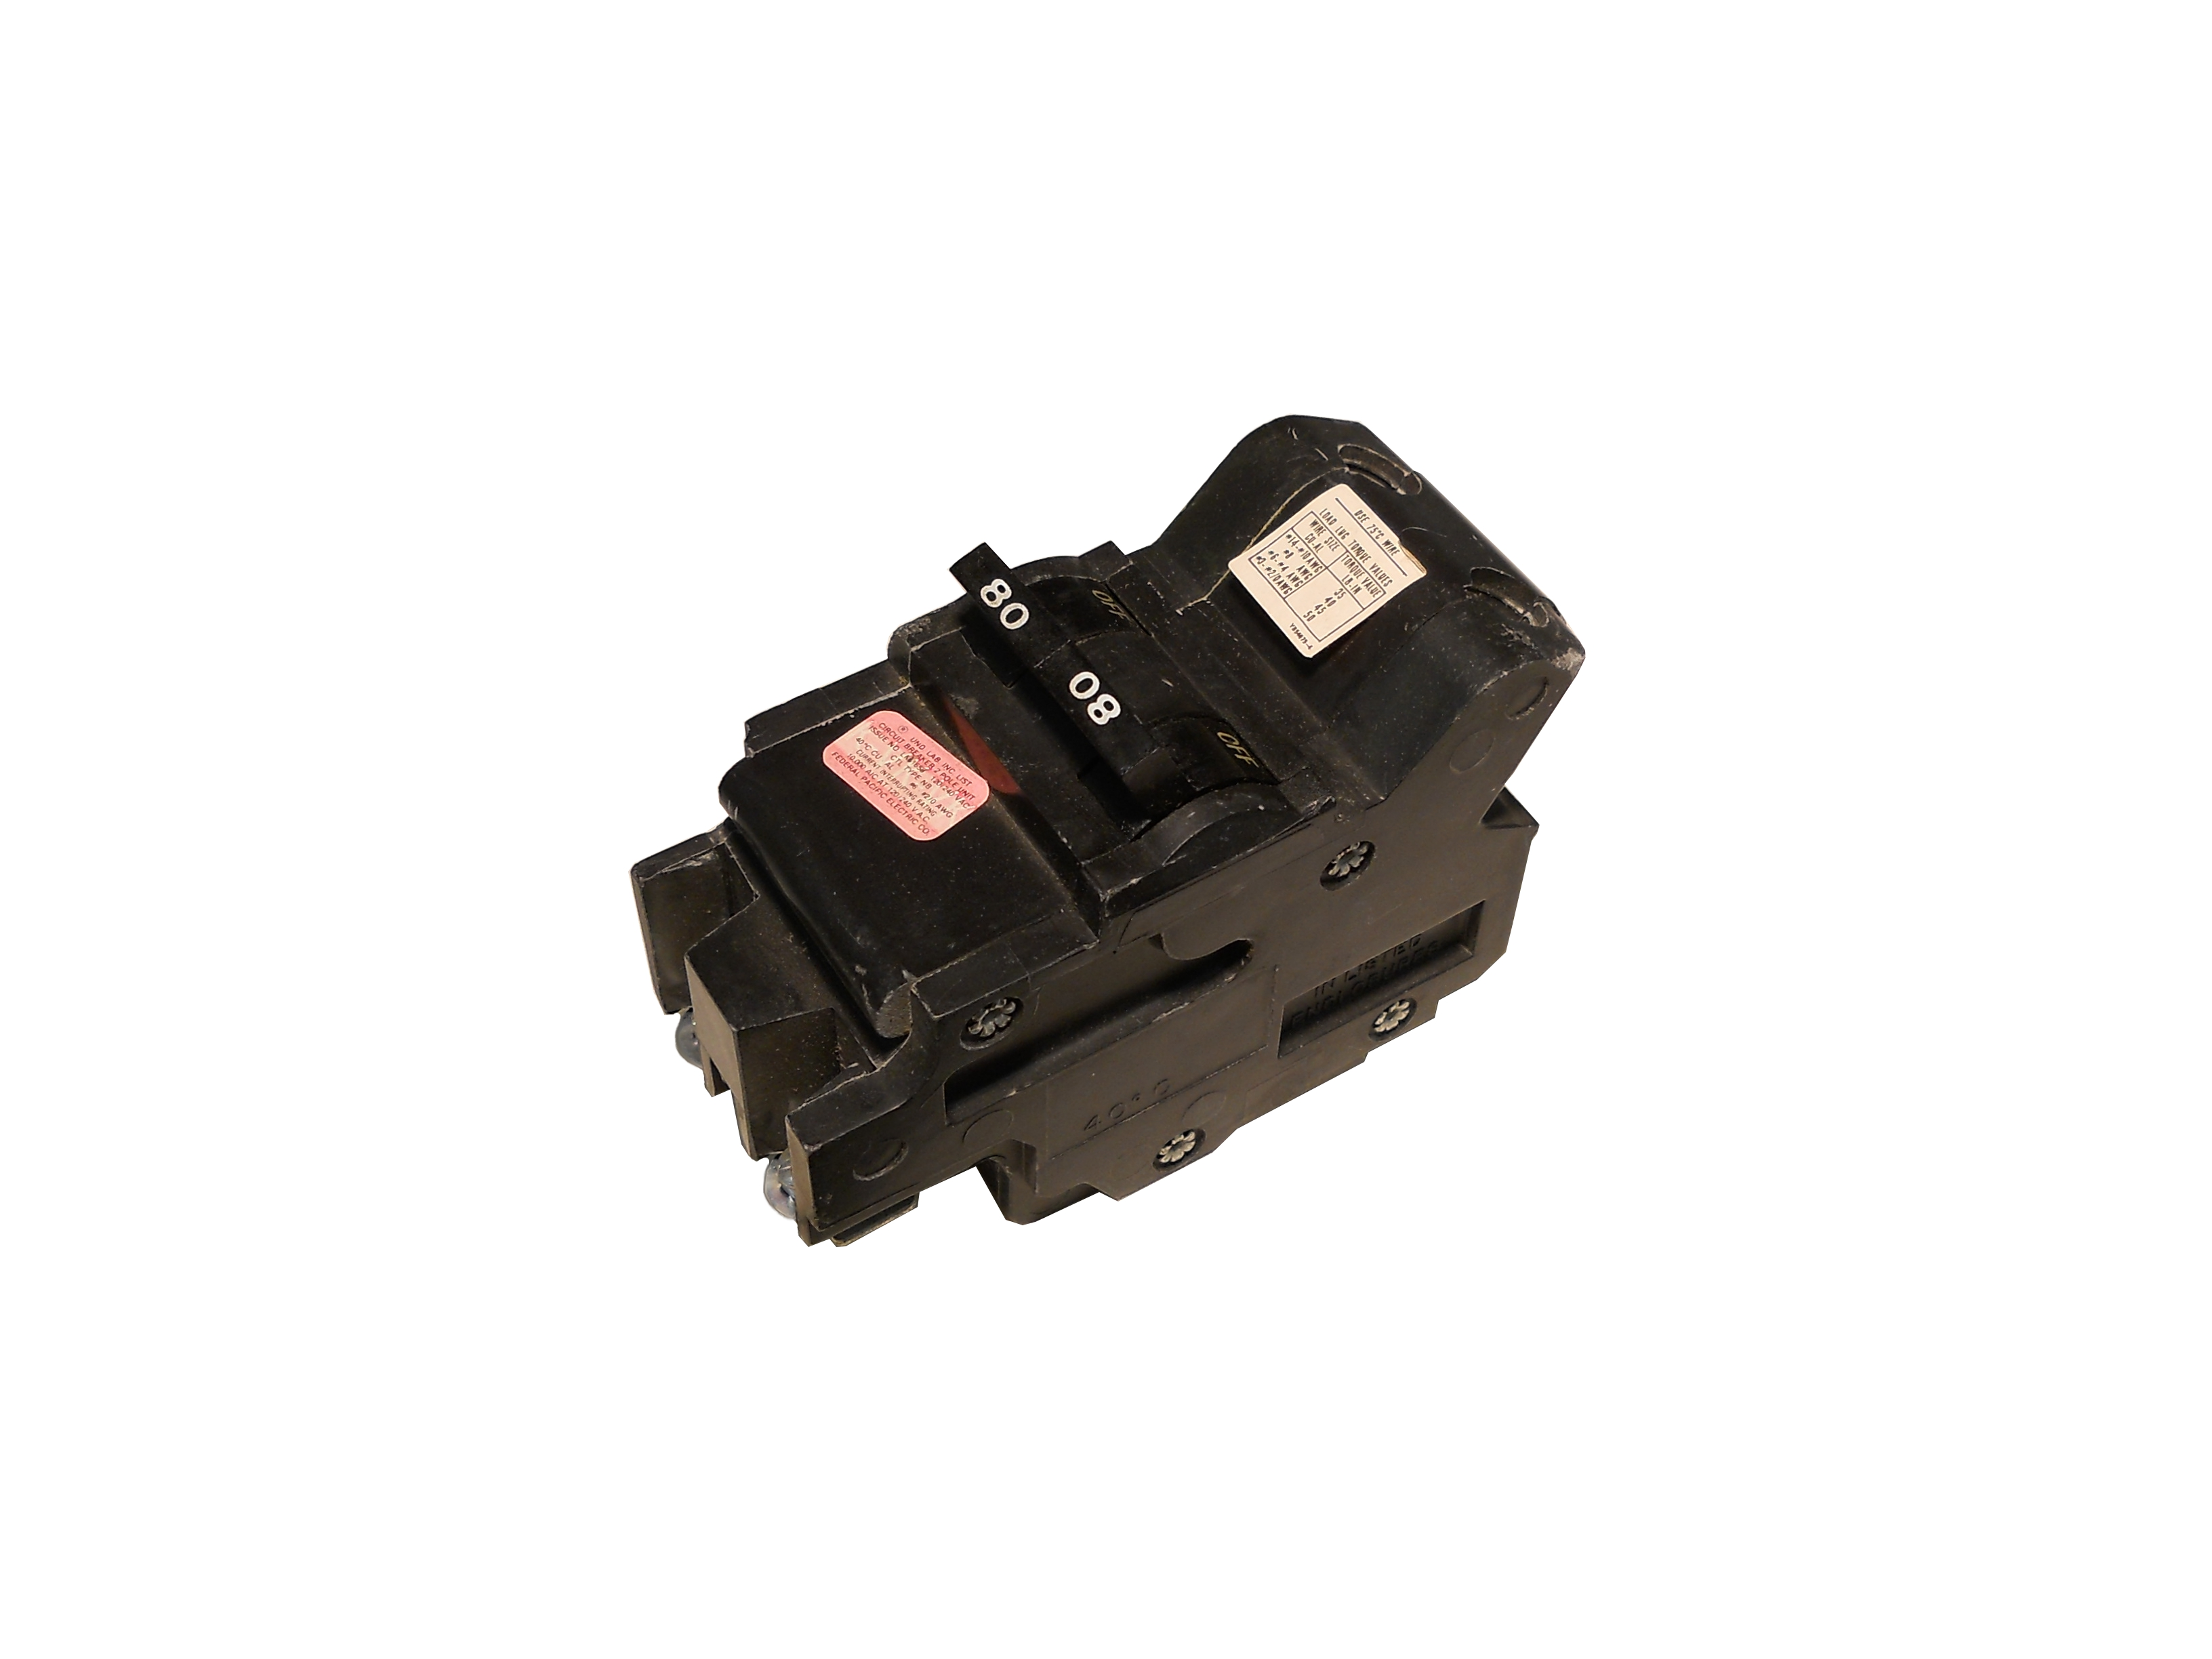 Ebay Buyer Claims Snad What Should Seller Do Circuit Breaker Labels Advertised